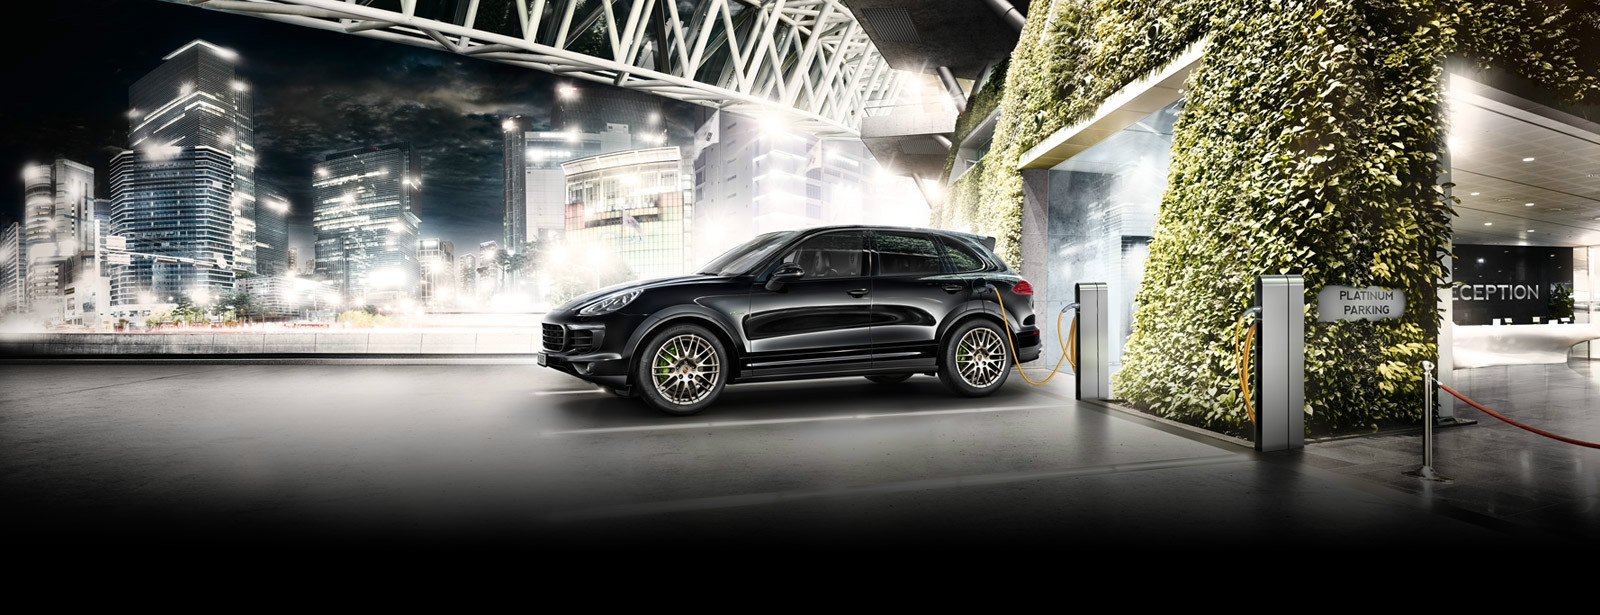 Porsche - Cayenne S E-Hybrid Platinum Edition - Accomplished performance.